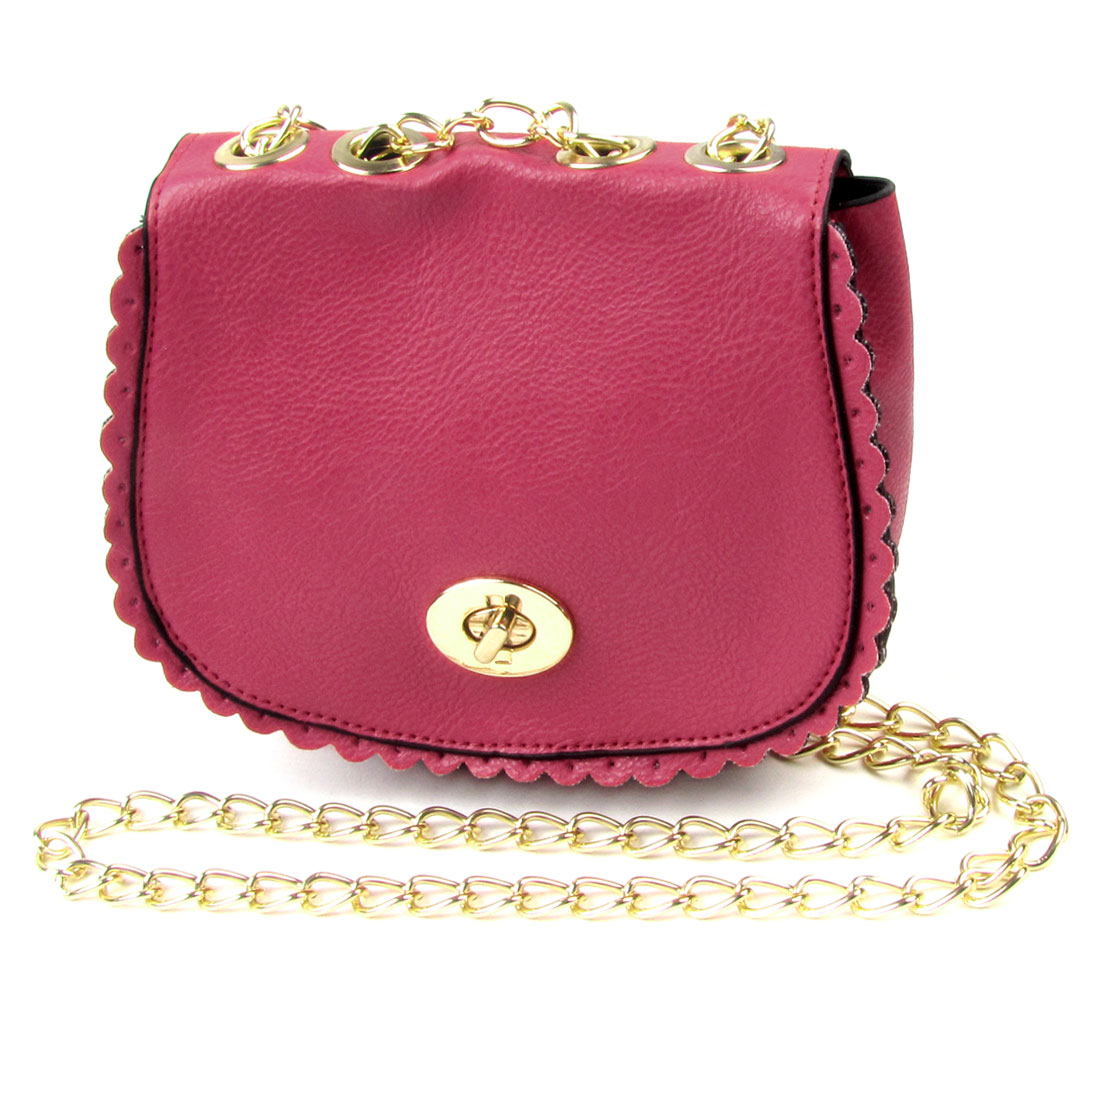 Rose Pink Faux Leather Falbala Design Gold Tone Metal Chain Shoulder Bag for Lady